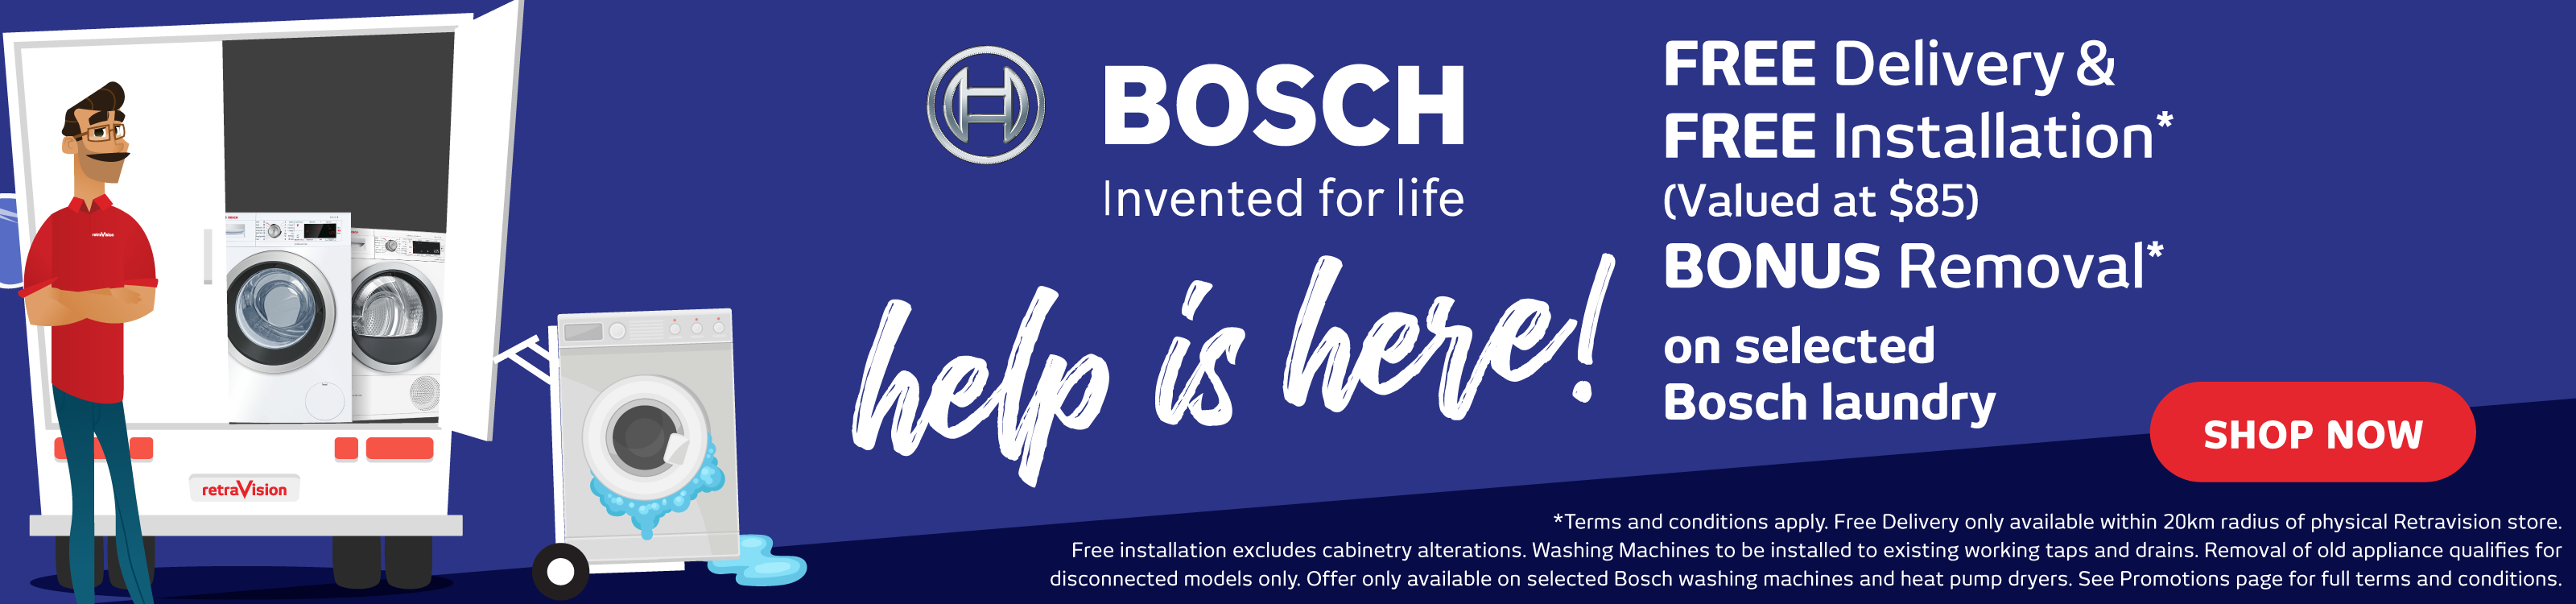 Free Delivery, Install & Removal on selected Bosch Laundry